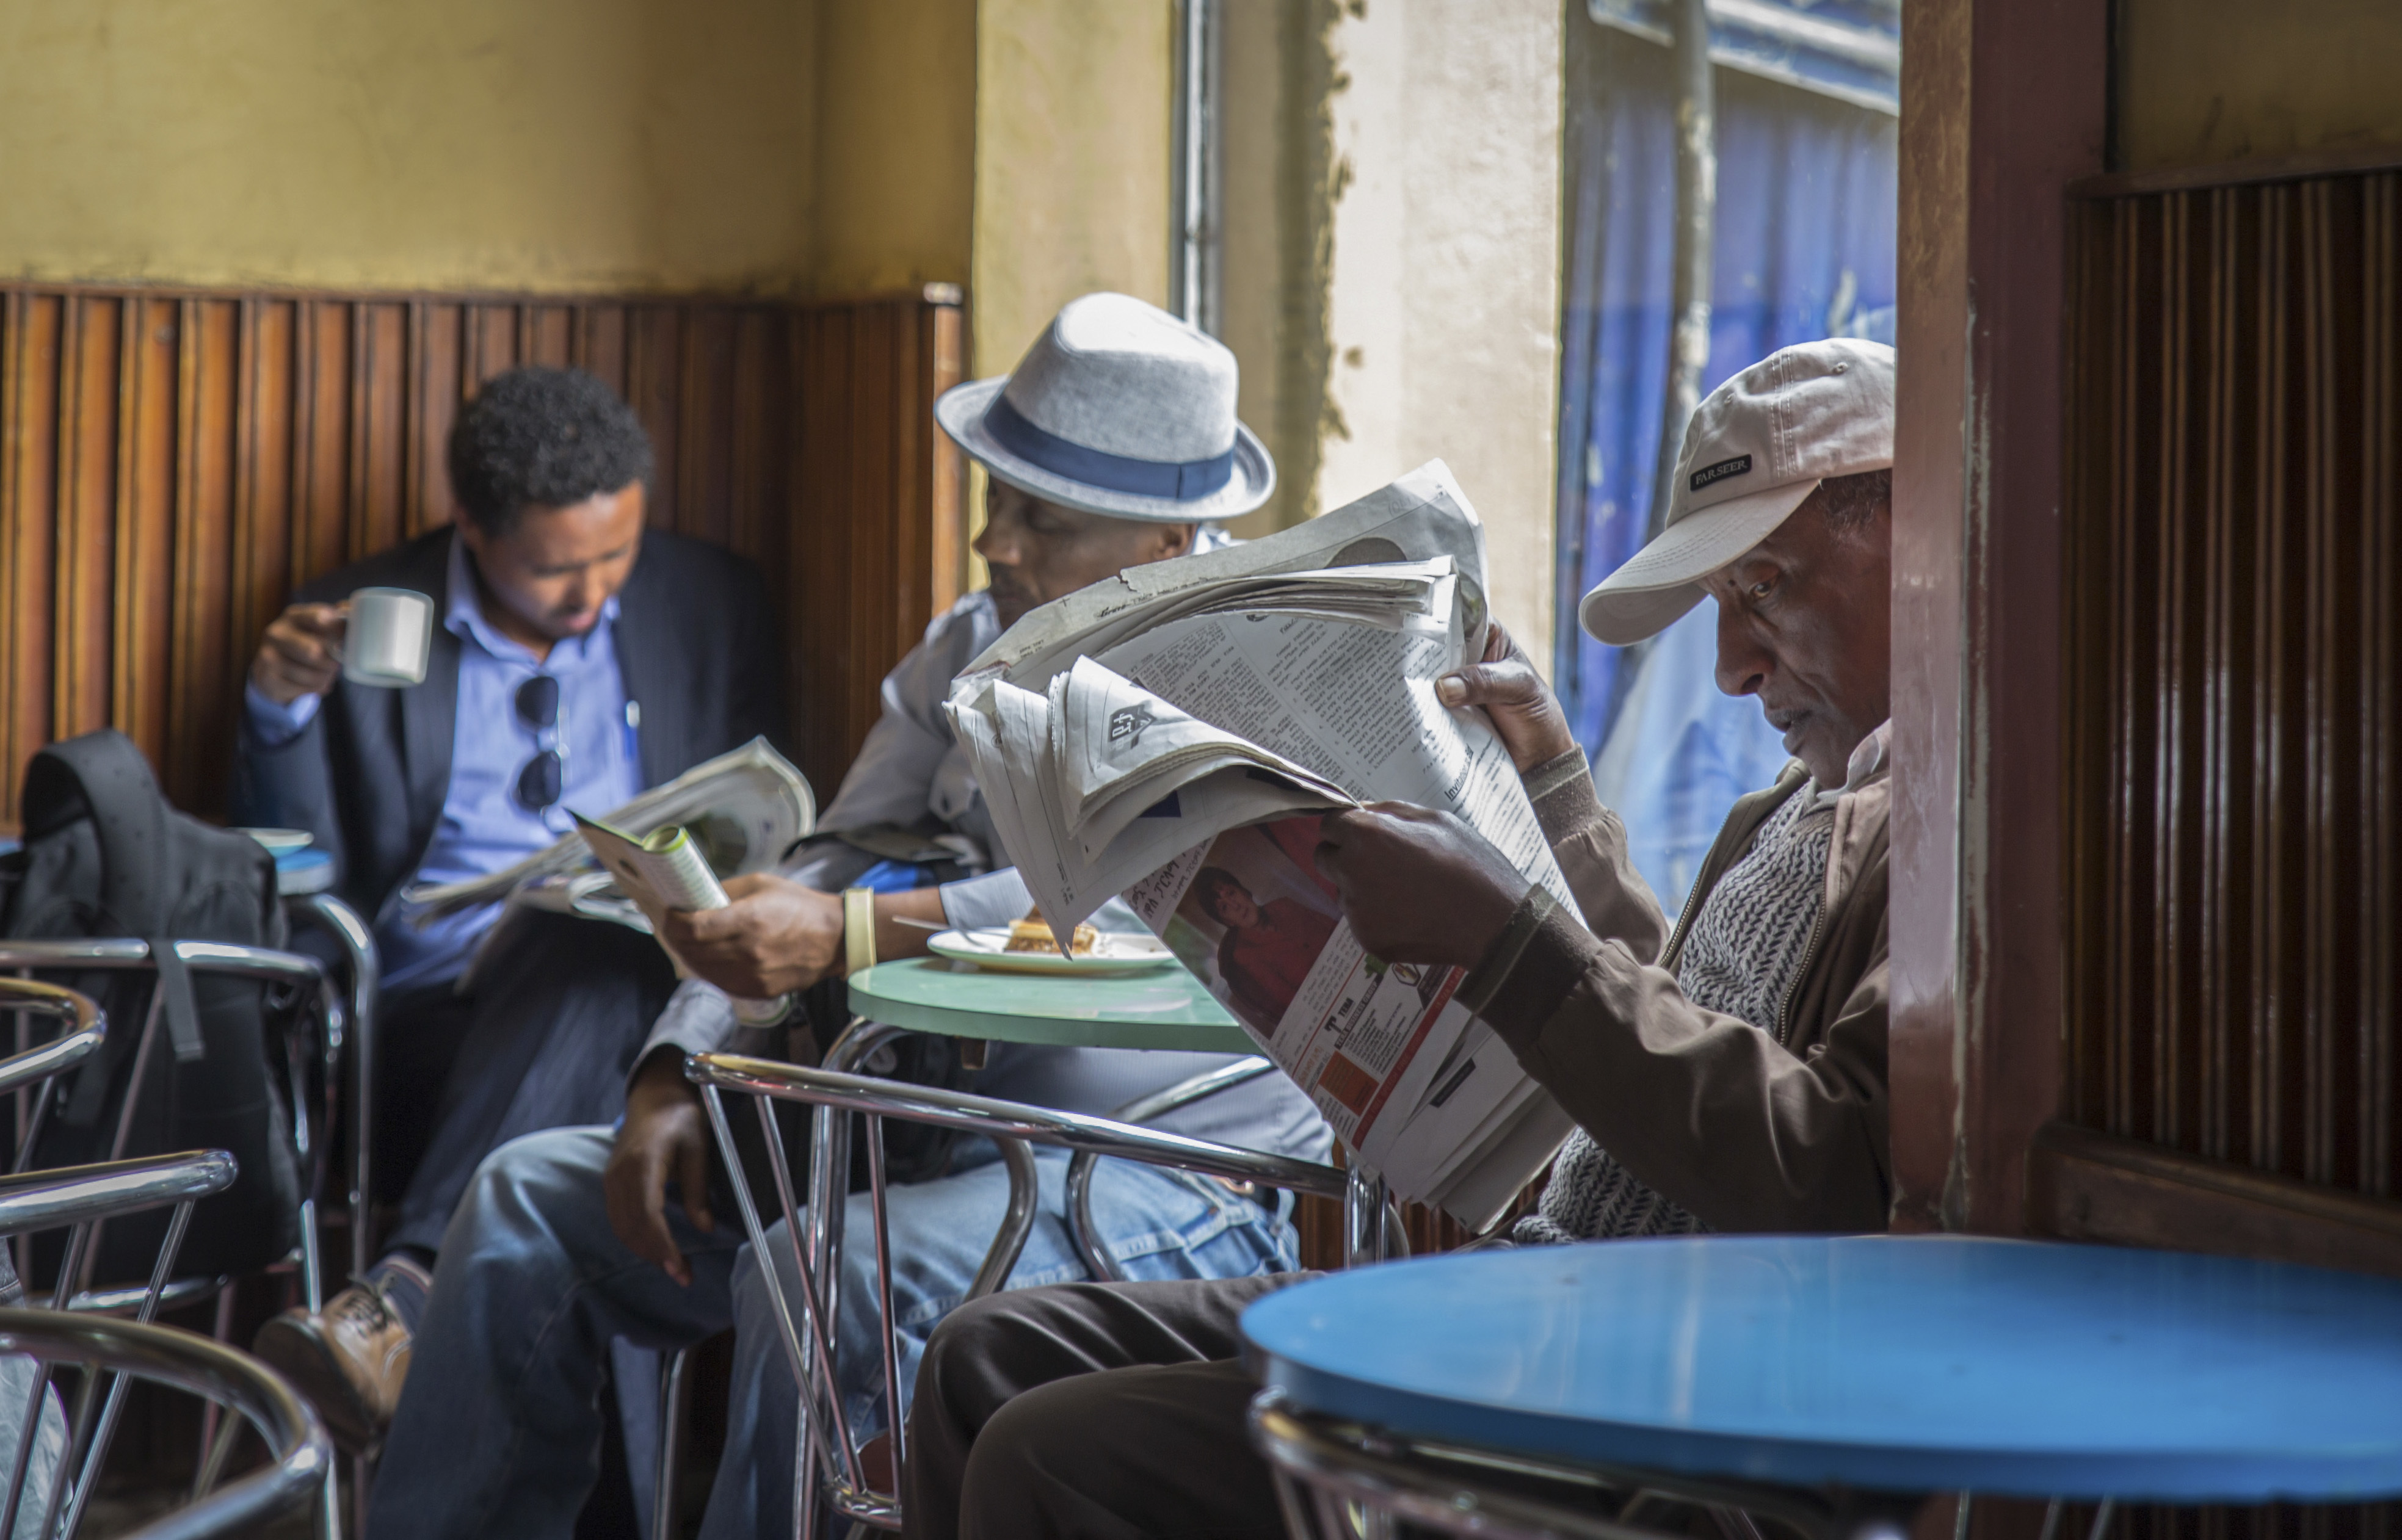 Ethiopian men read newspapers and drink coffee at a cafe in Addis Ababa, Ethiopia Monday, Oct. 10, 2016.